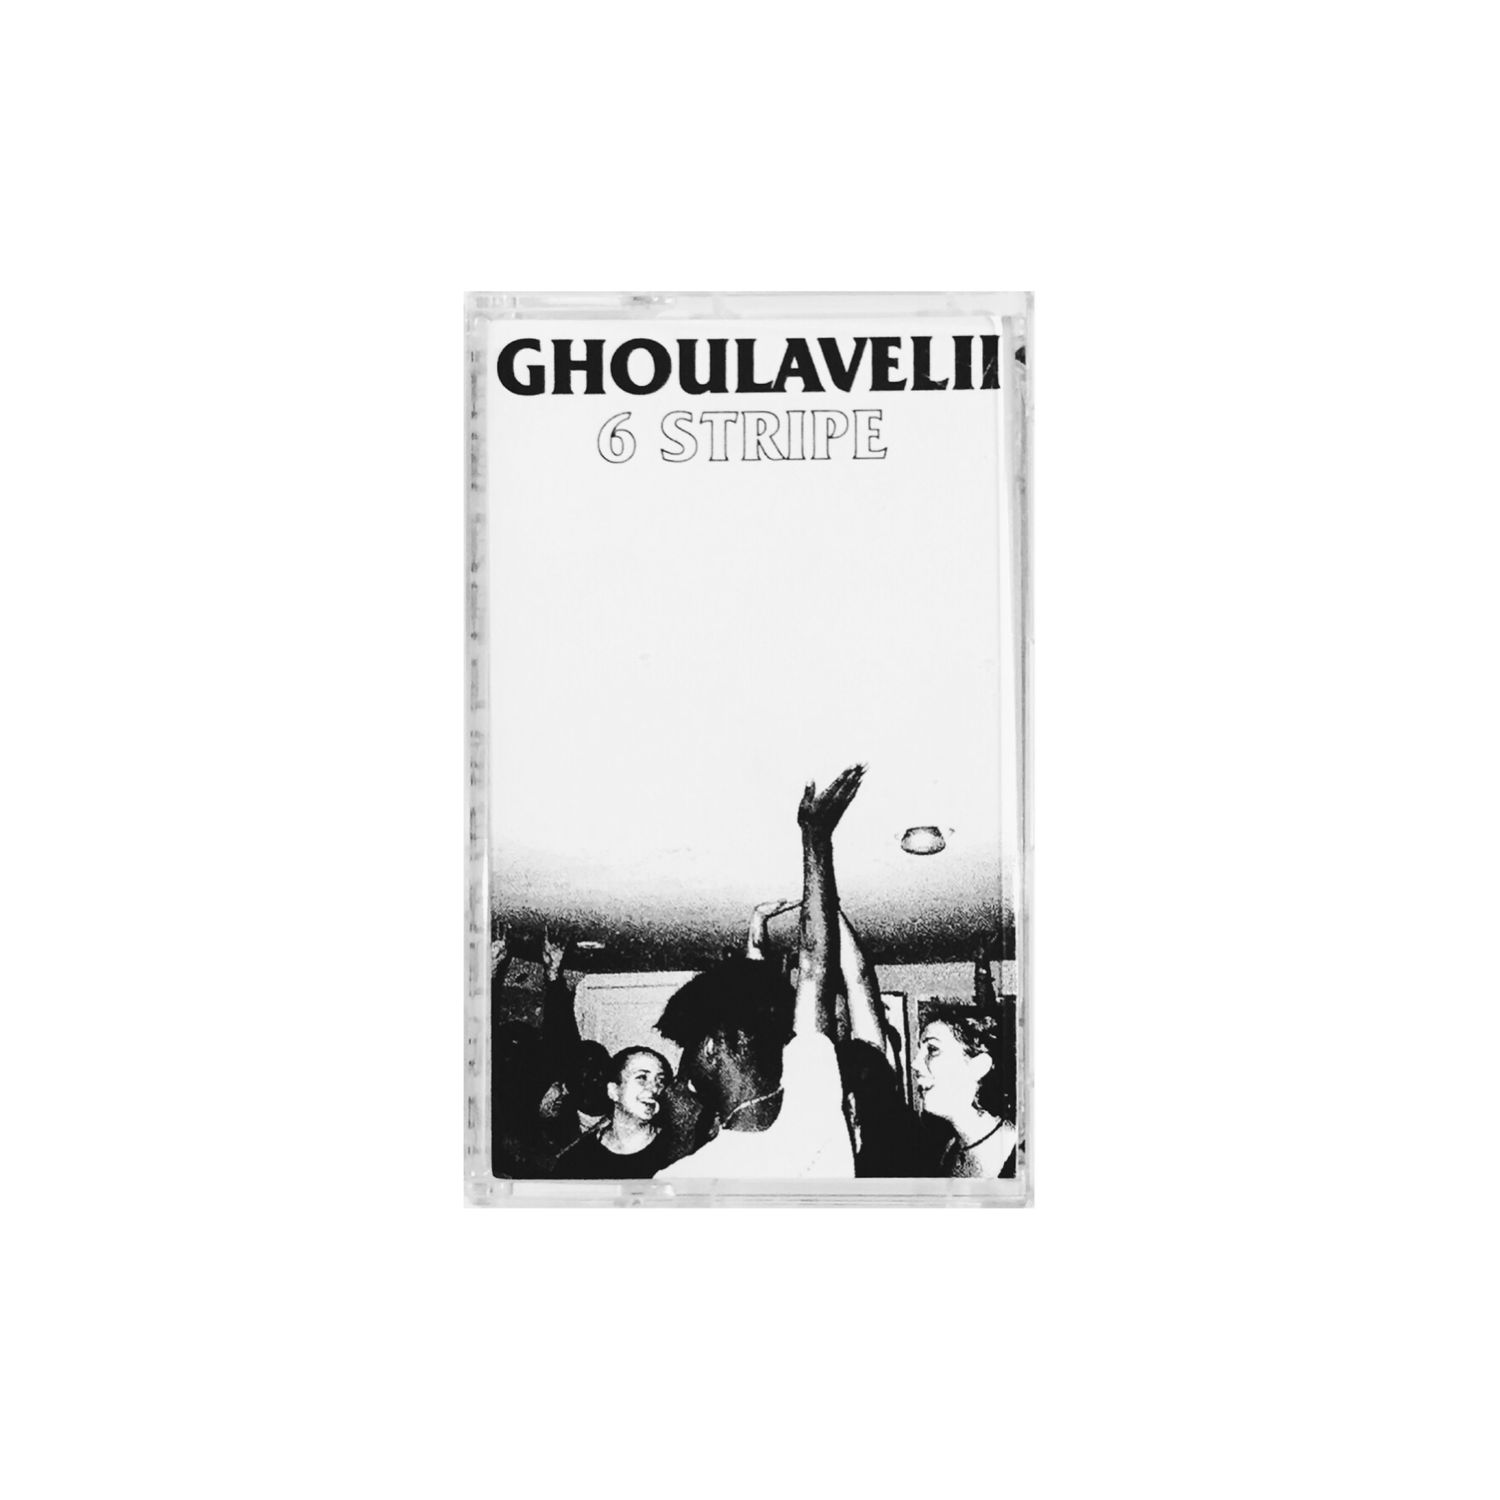 Image of GHOULAVELII - 6 STRIPE CASSETTE